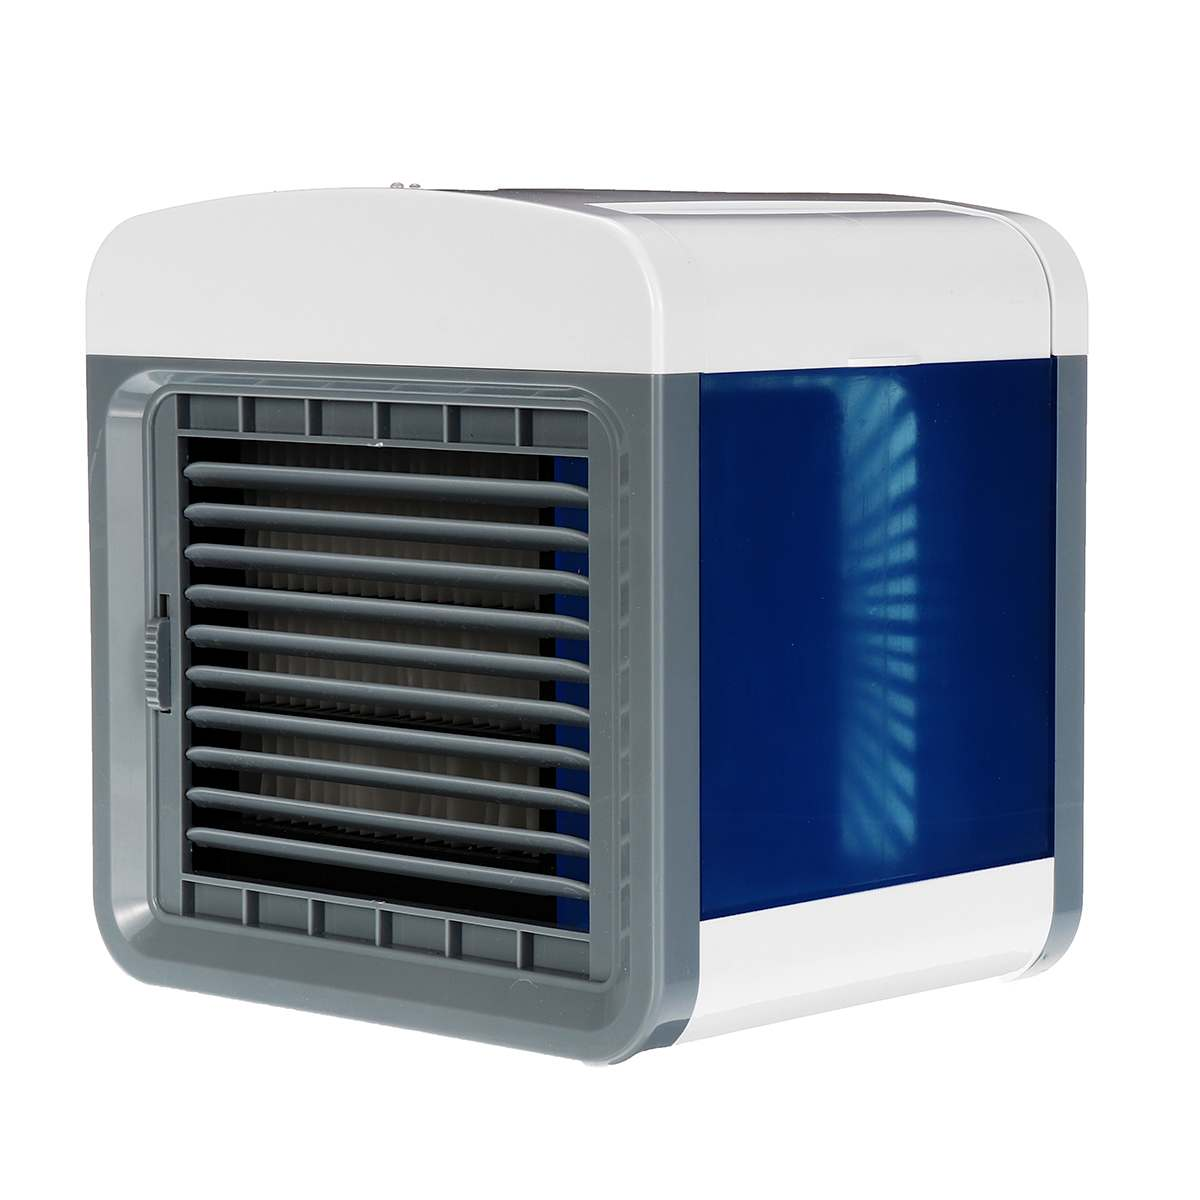 Portable Mini USB Air Conditioner Fan Personal Space The Quick Air Cooler Fans Air Cooler Humidifier Home OfficePortable Mini USB Air Conditioner Fan Personal Space The Quick Air Cooler Fans Air Cooler Humidifier Home Office